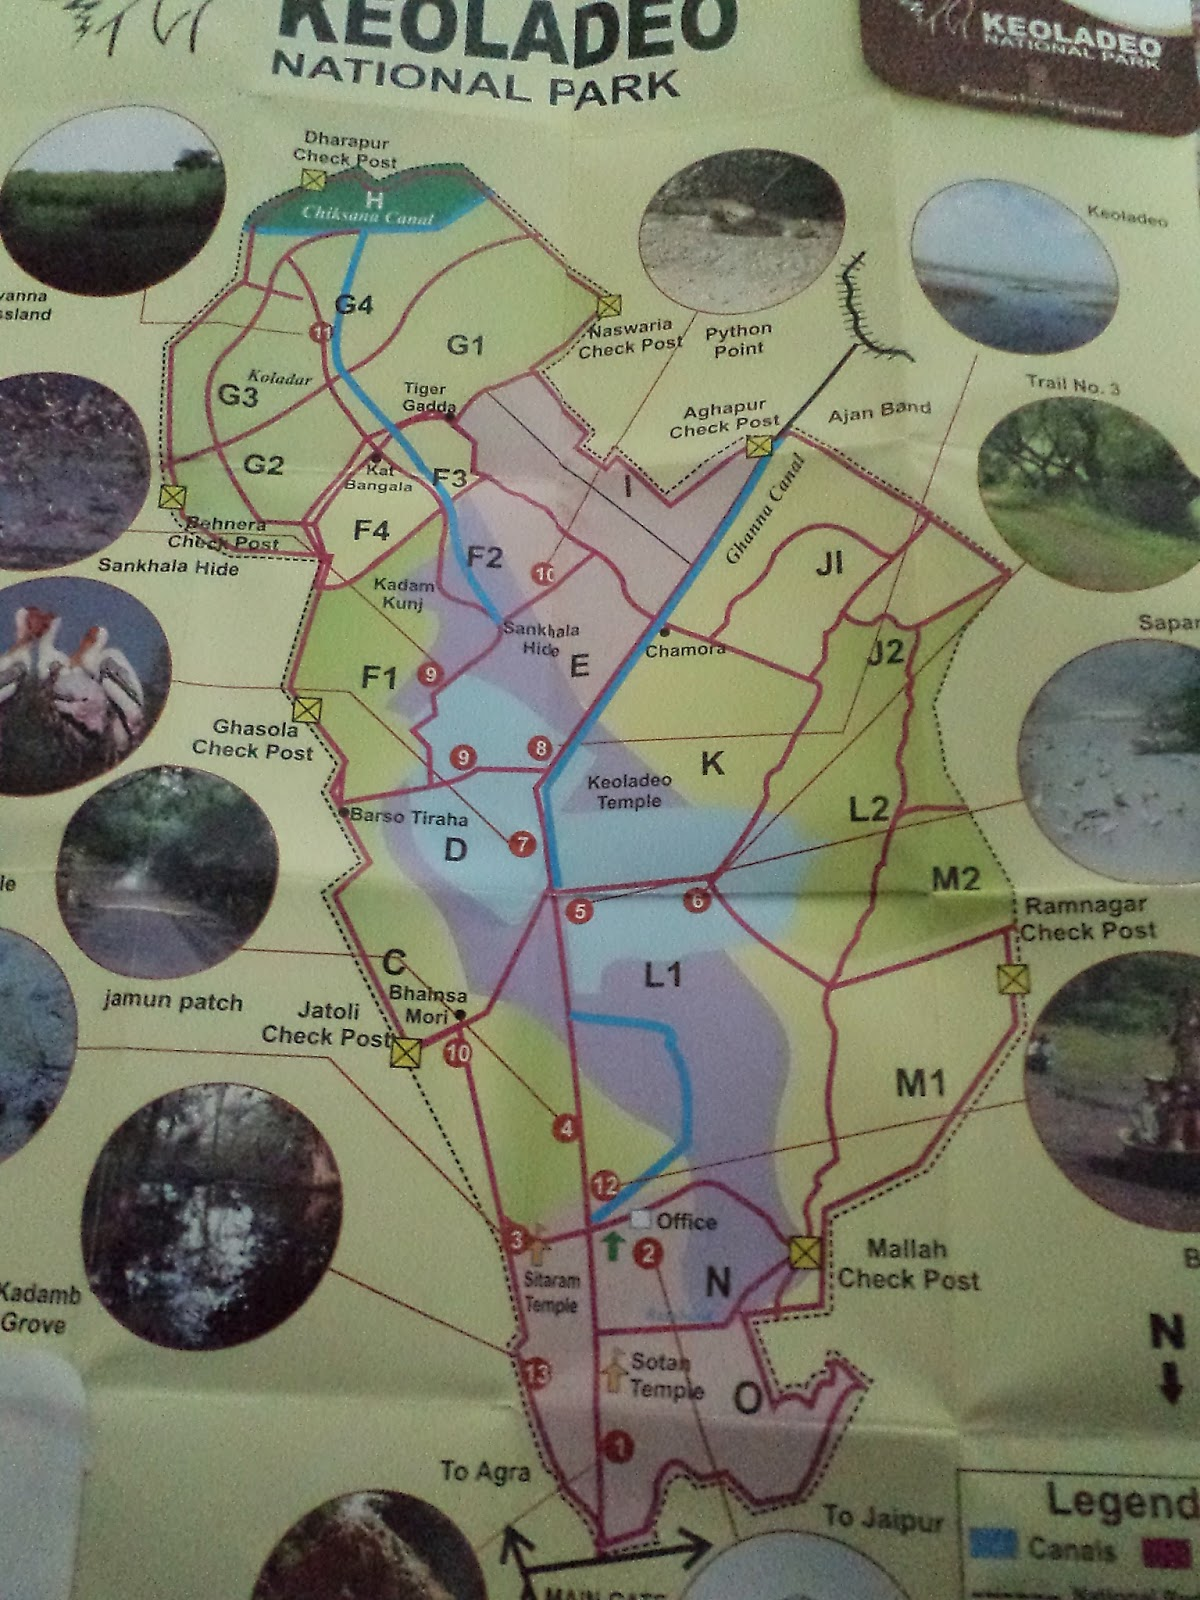 keoladeo national park map guide